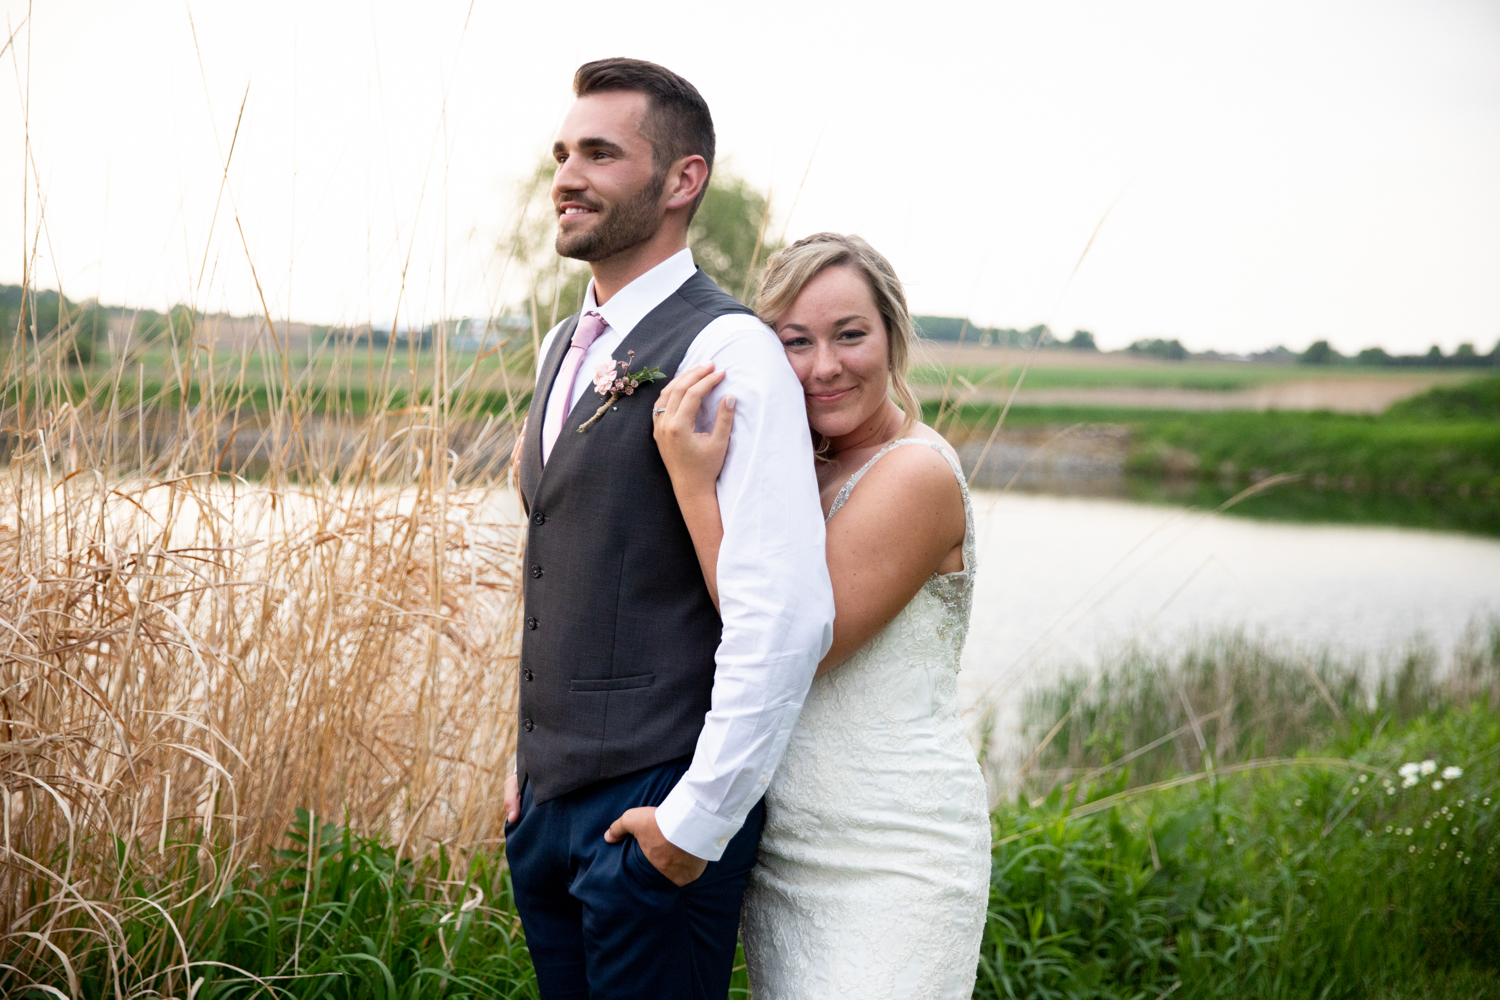 Romantic and Rustic Backyard Wedding in Wisconsin - Whit Meza Photography